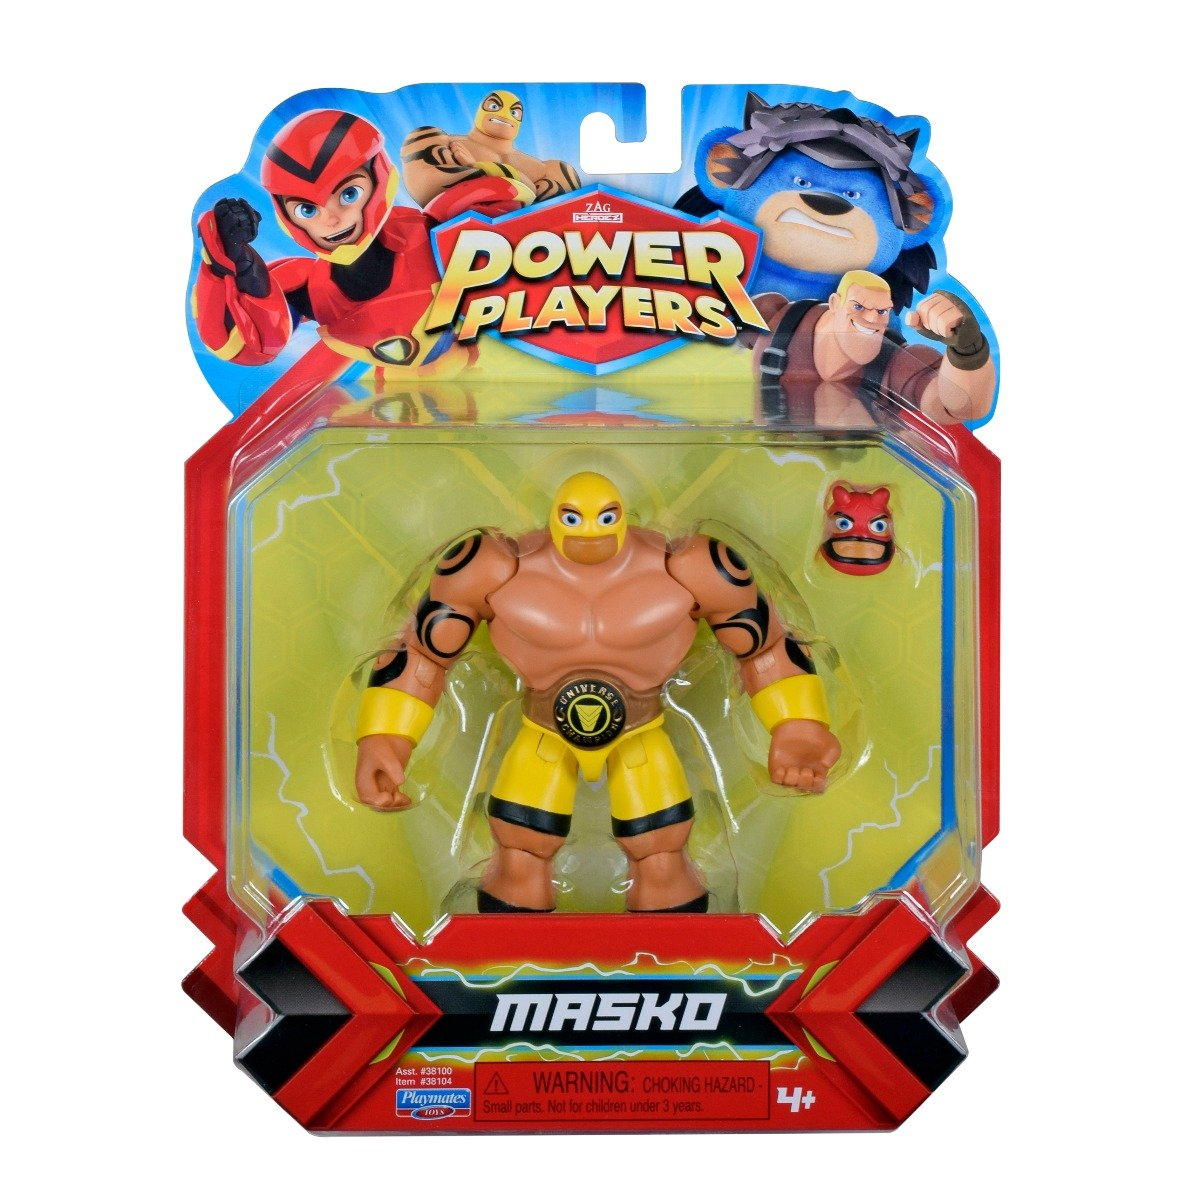 Figurina Power Players, Masko 38104